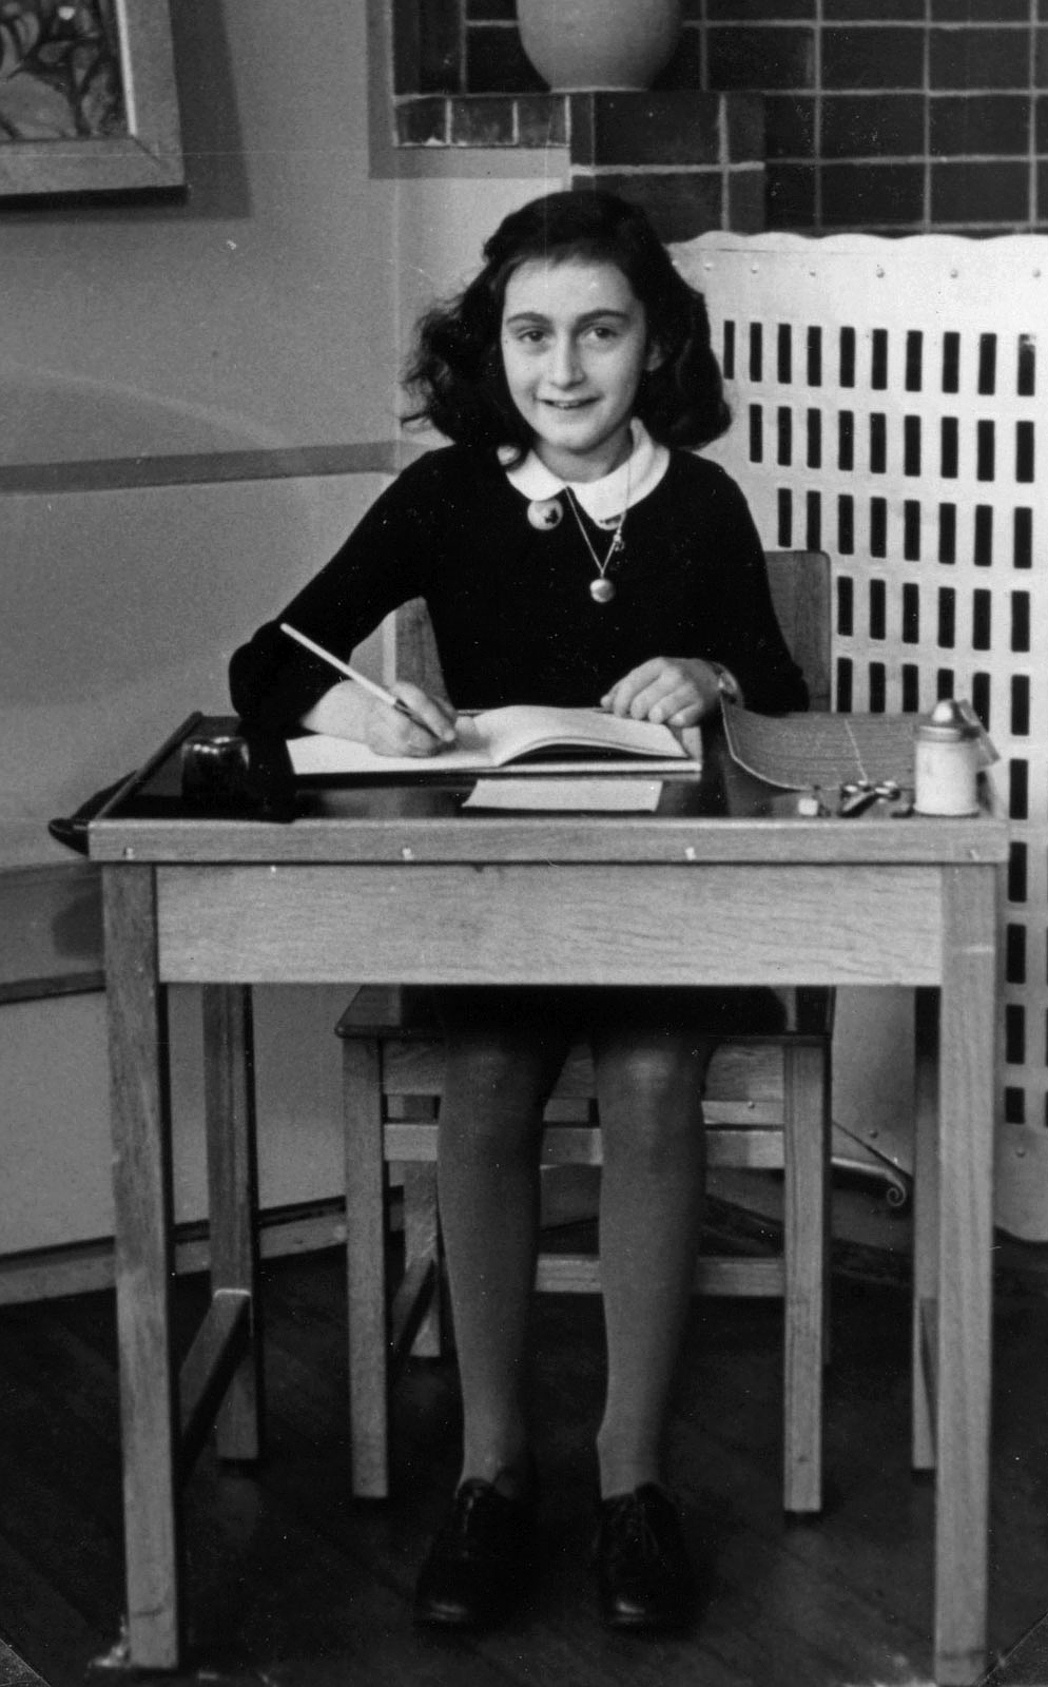 The Versions of Anne Frank's Diary Explained